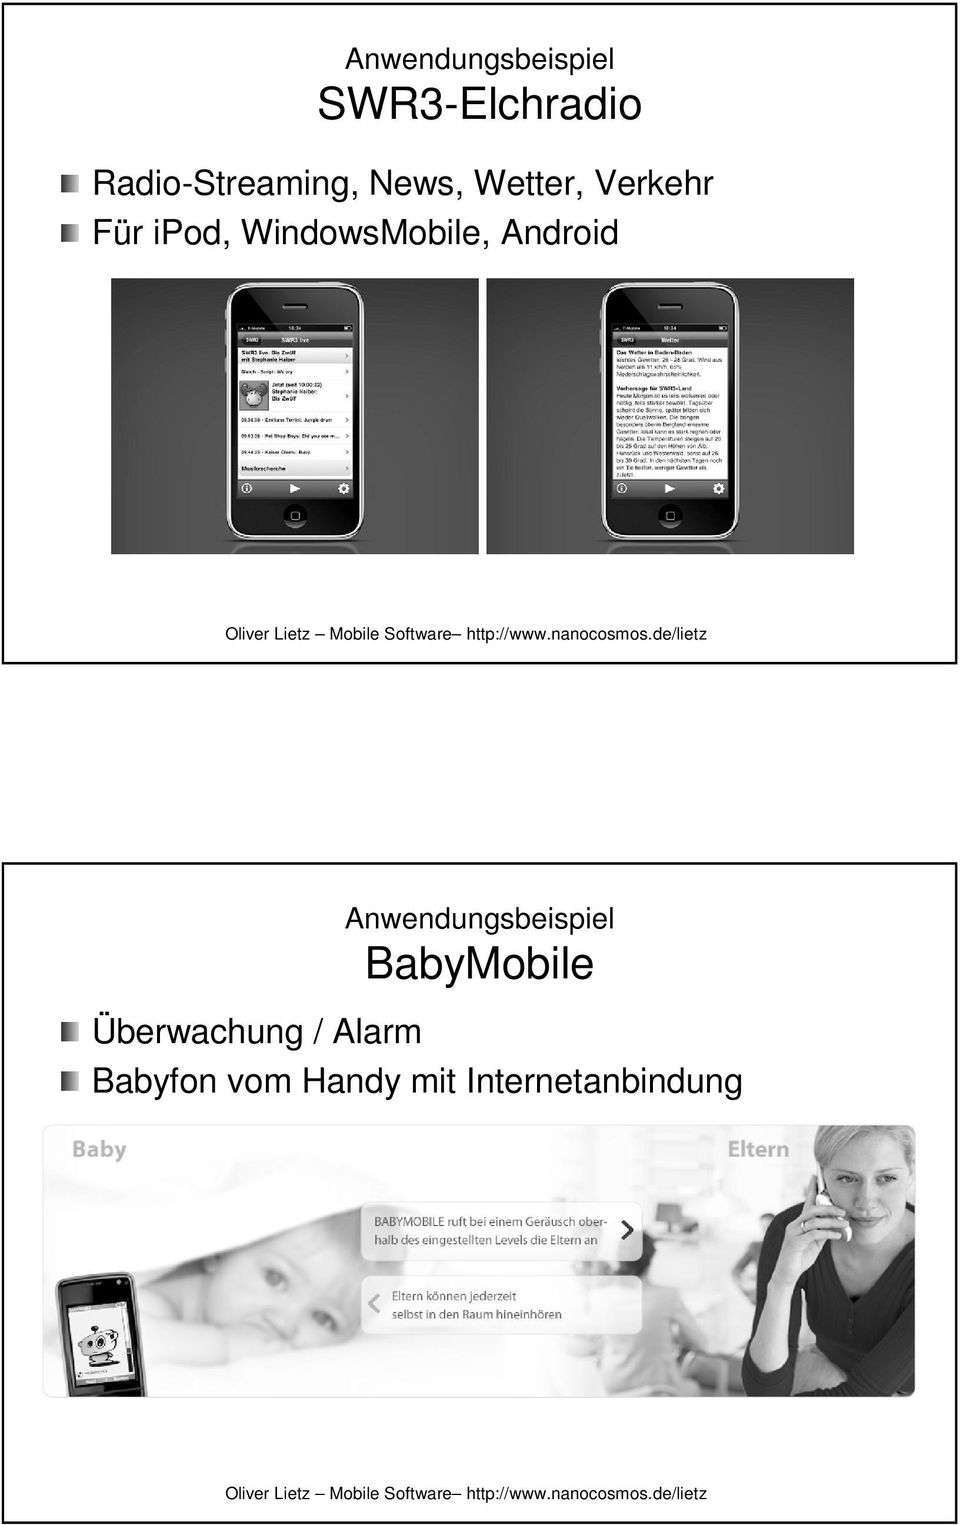 WindowsMobile, Android Anwendungsbeispiel